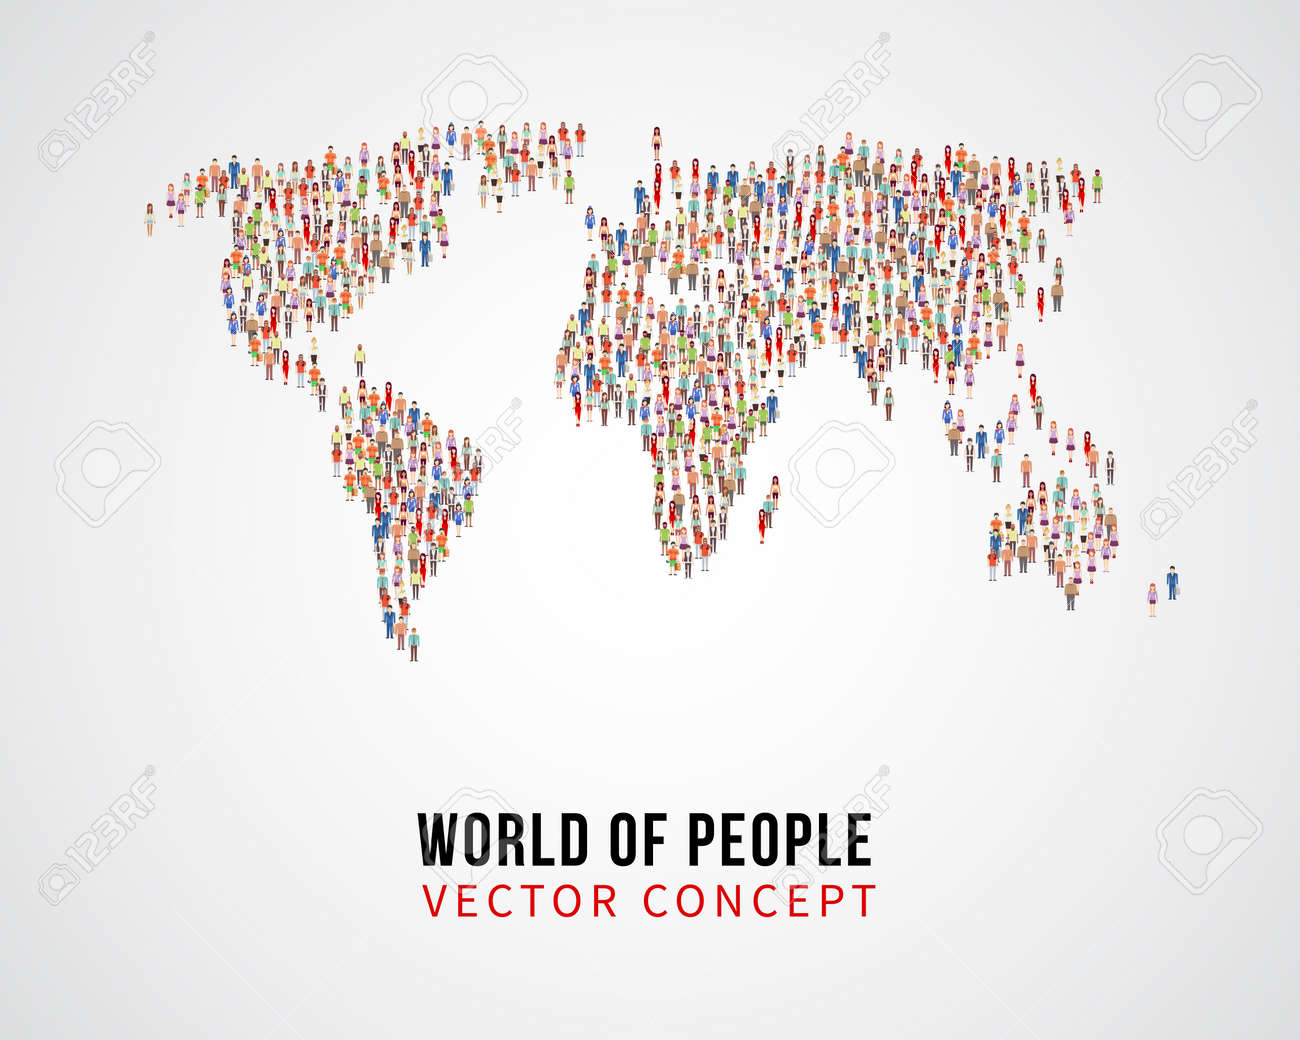 People global connection, earth population on world map vector concept. Global population on planet, population of people on form world map illustration - 165951874